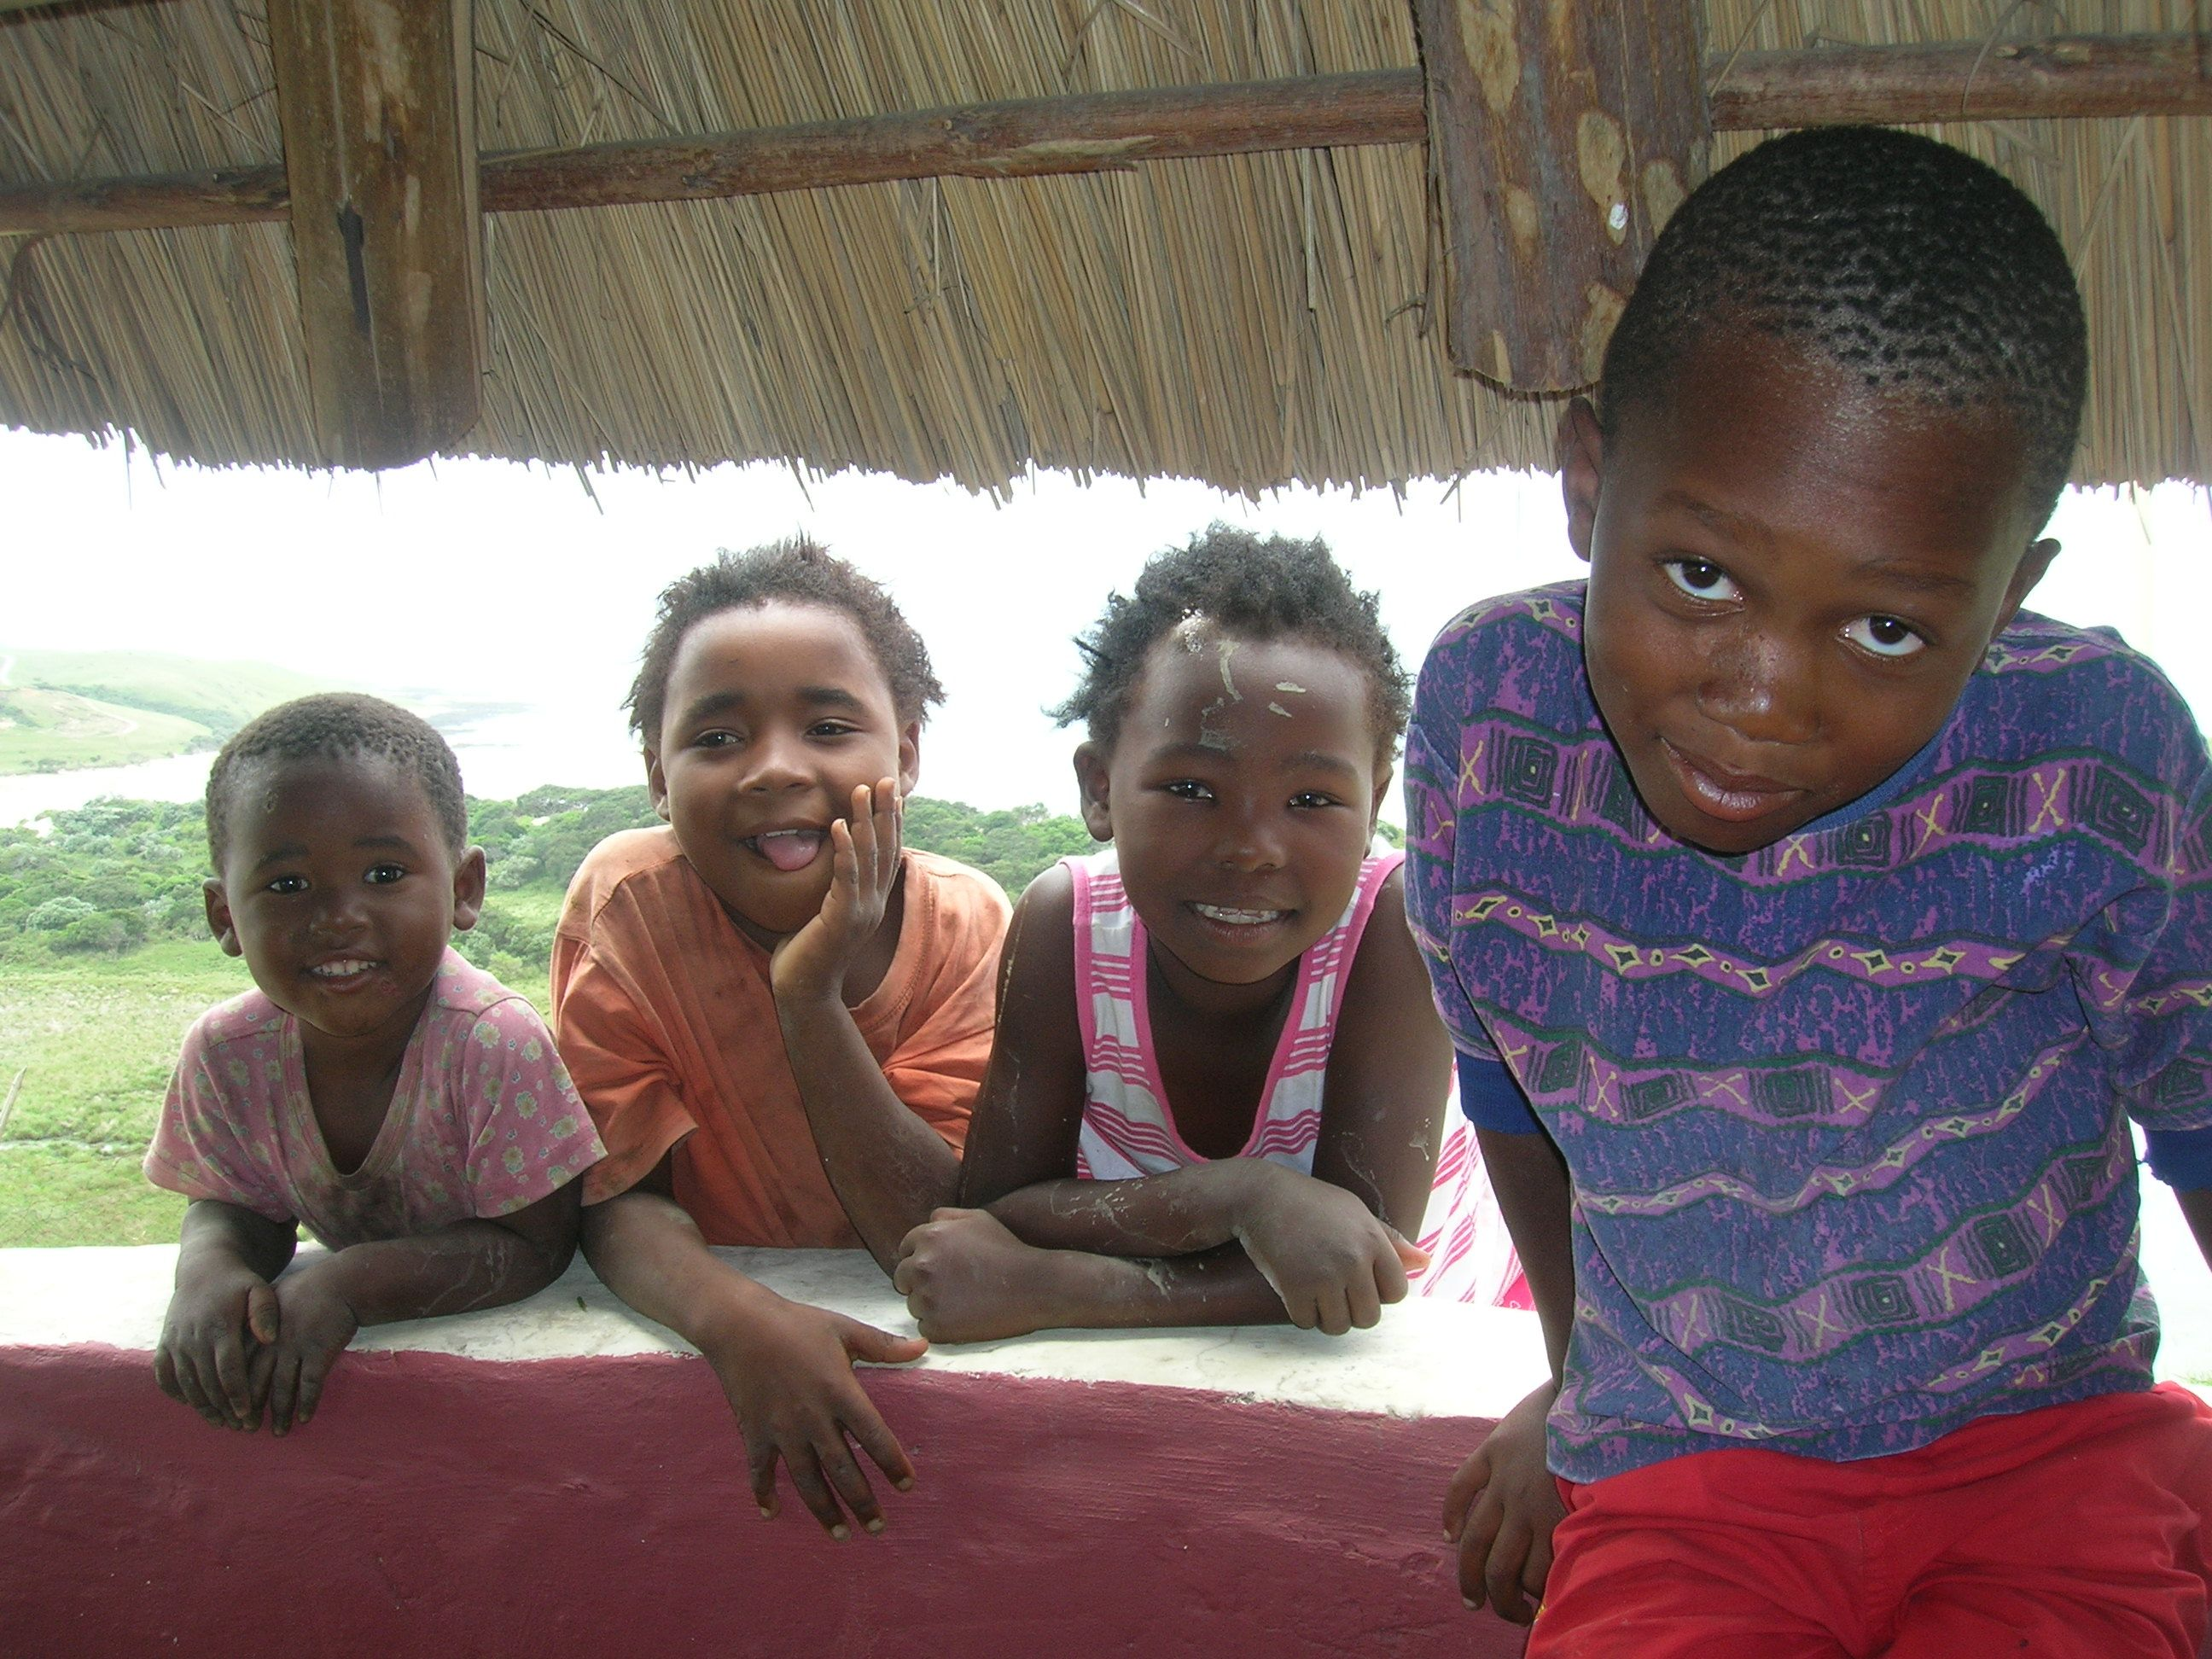 Xhosa children in Transkei